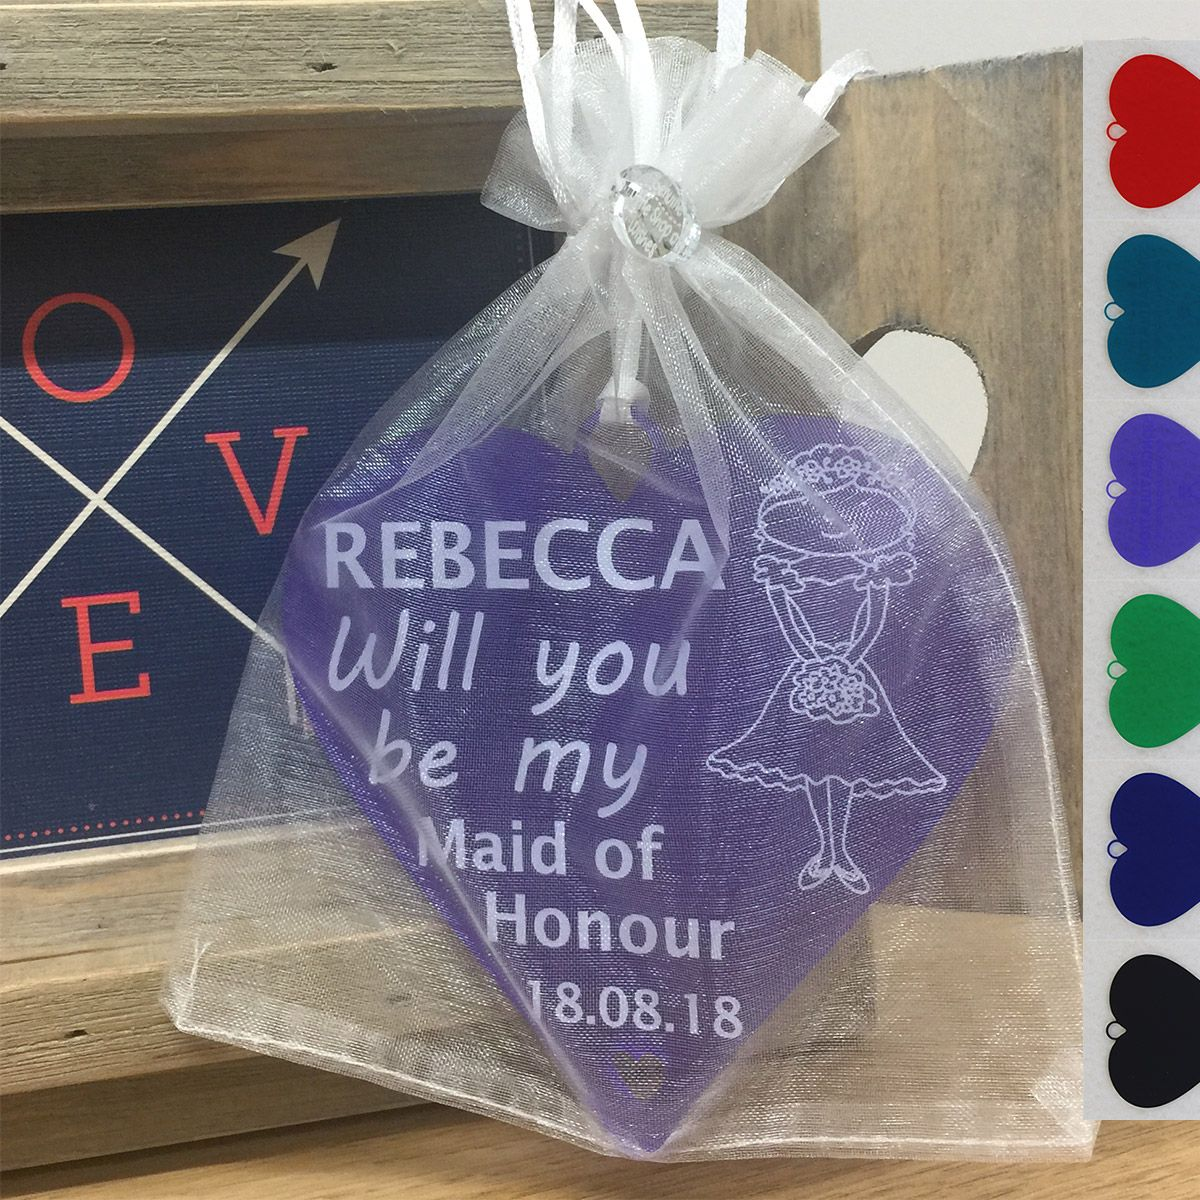 Maid Of Honour Gift Will You Be My Personalised Wedding Heart Keepsake